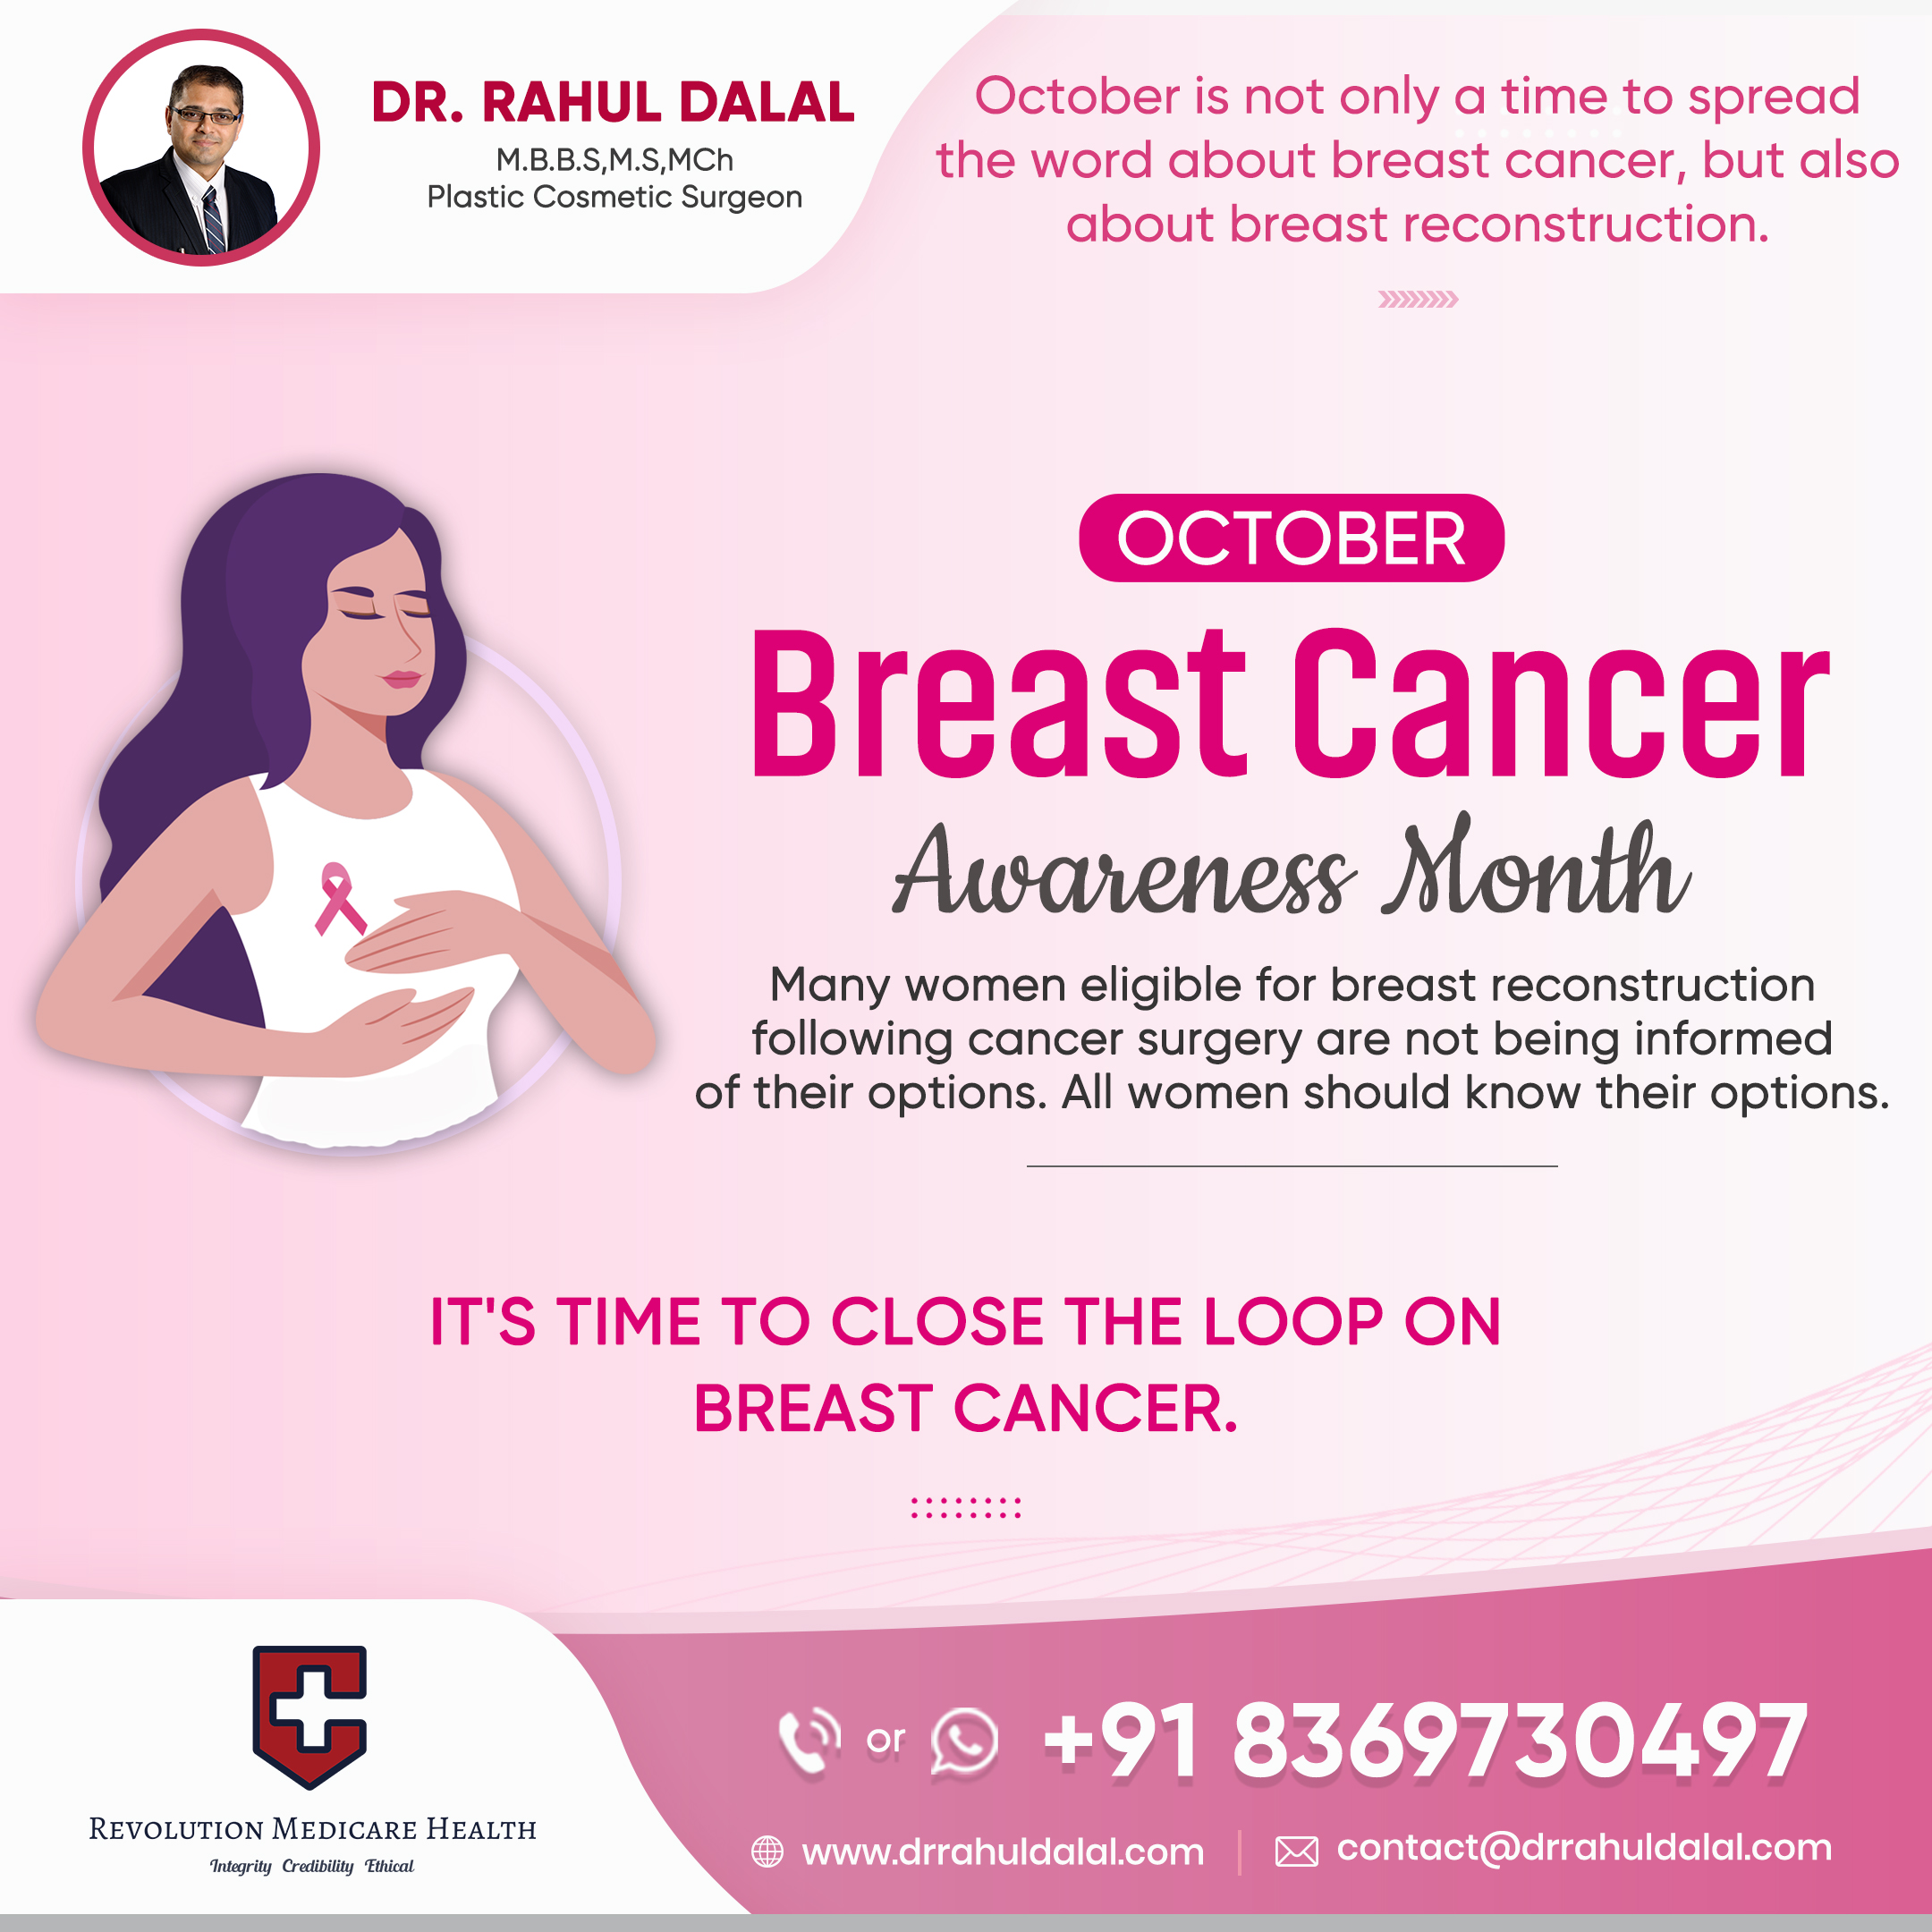 about breast reconstruction